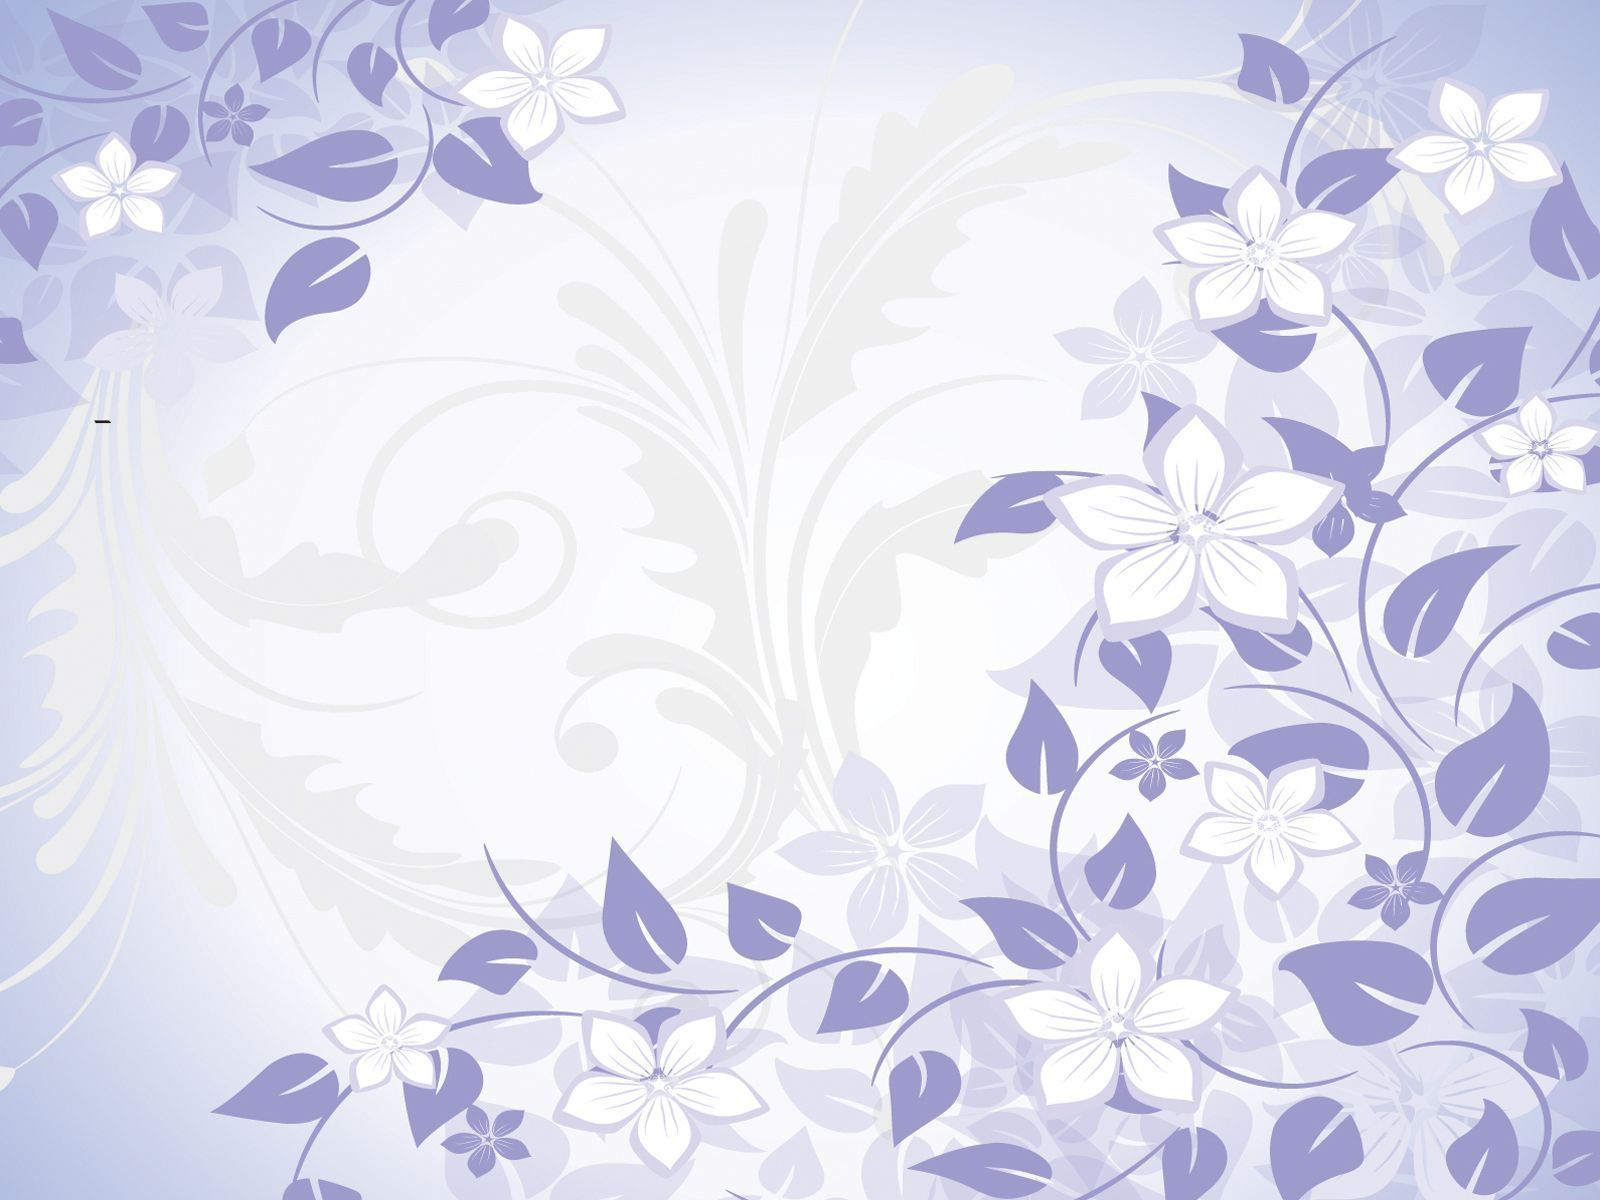 Blue flowers spring powerpoint templates blue flowers fuchsia blue flowers spring powerpoint templates blue flowers fuchsia toneelgroepblik Image collections